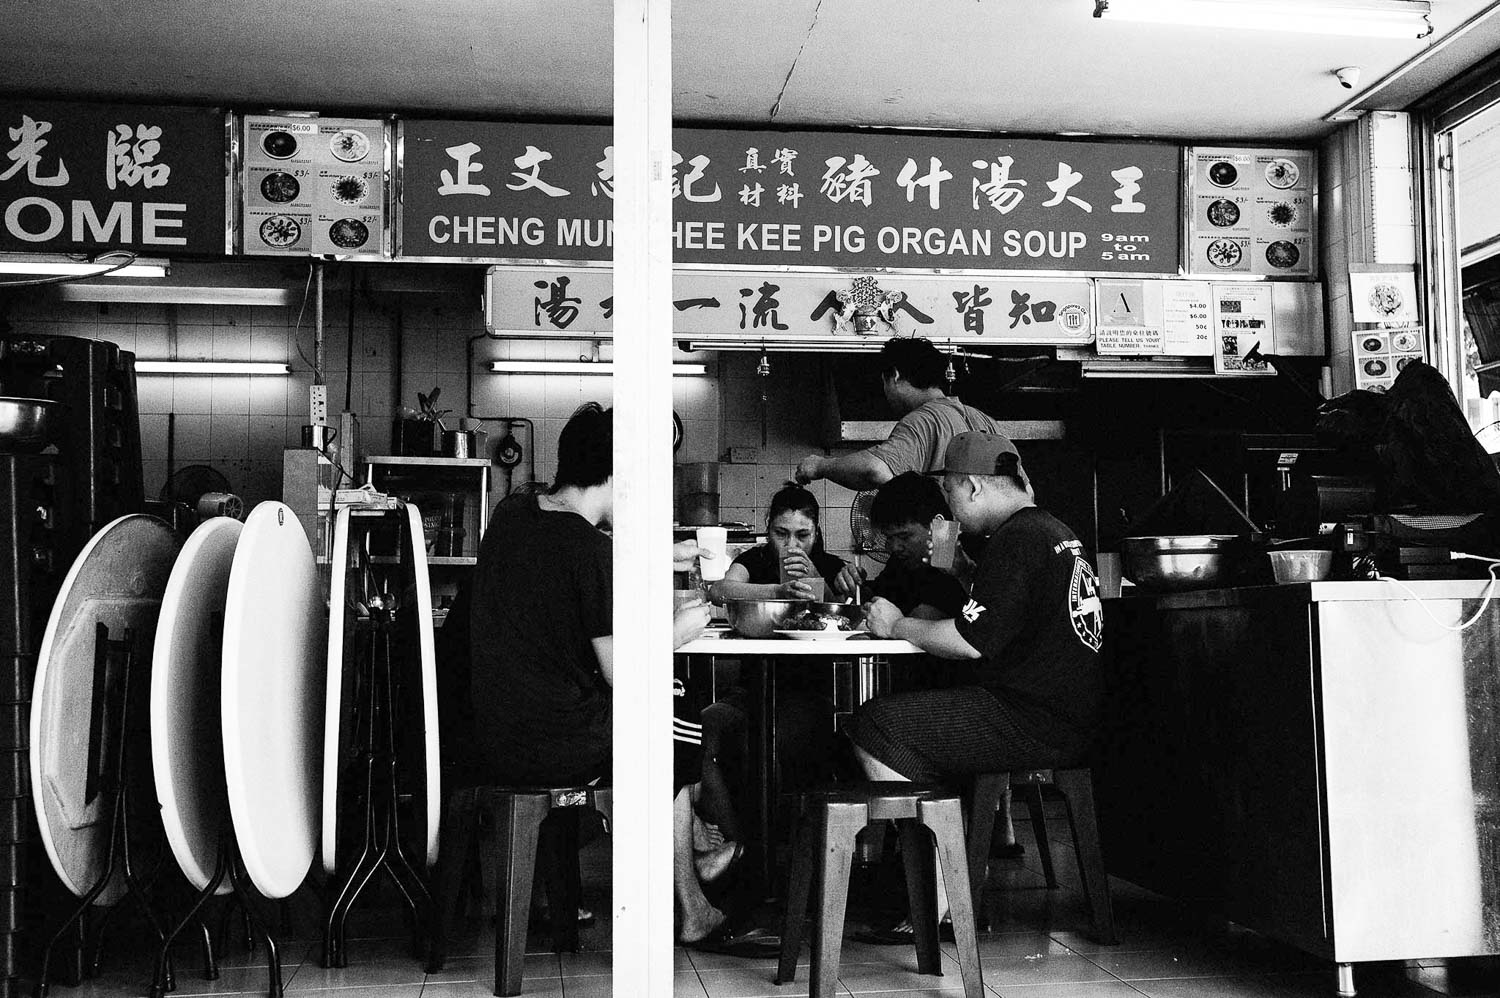 singapore-travel-photography-pork-organ-noodles